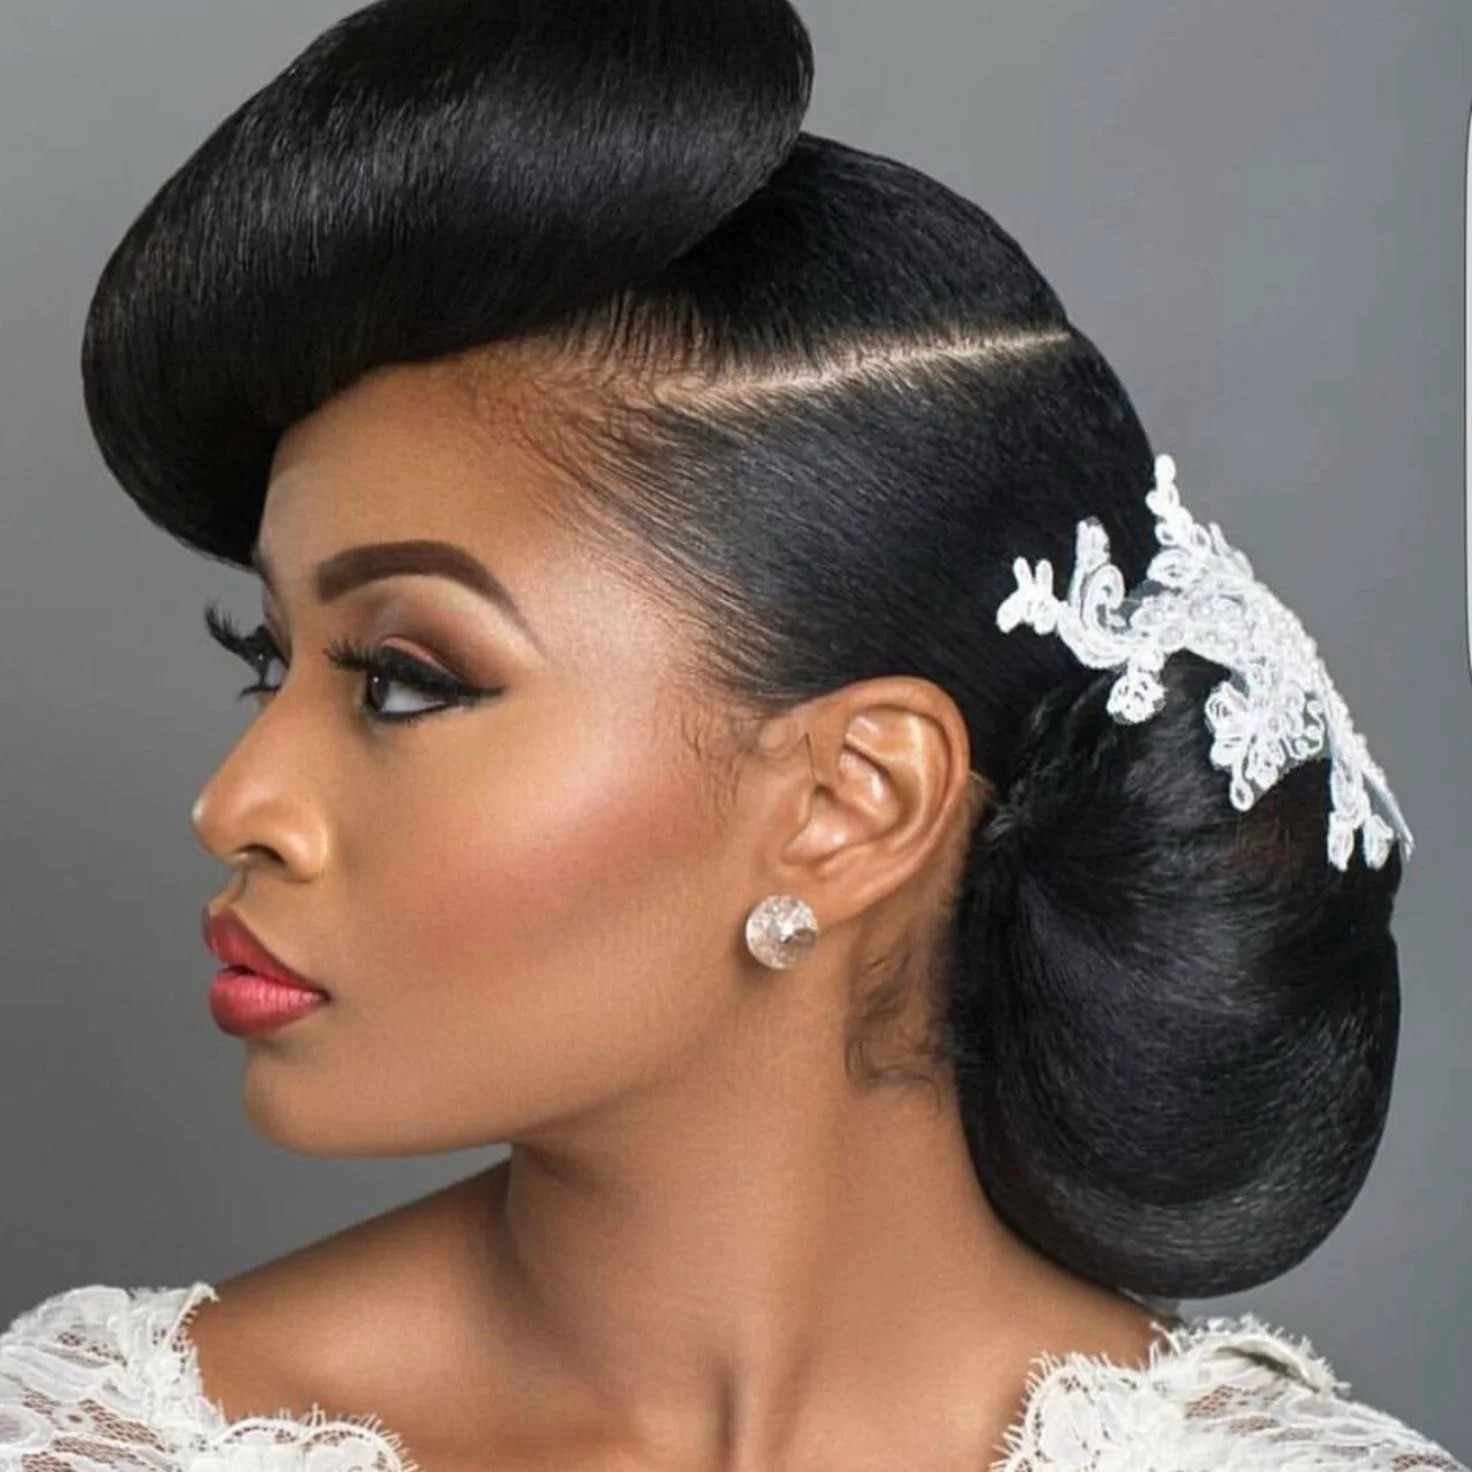 13 natural hairstyles for